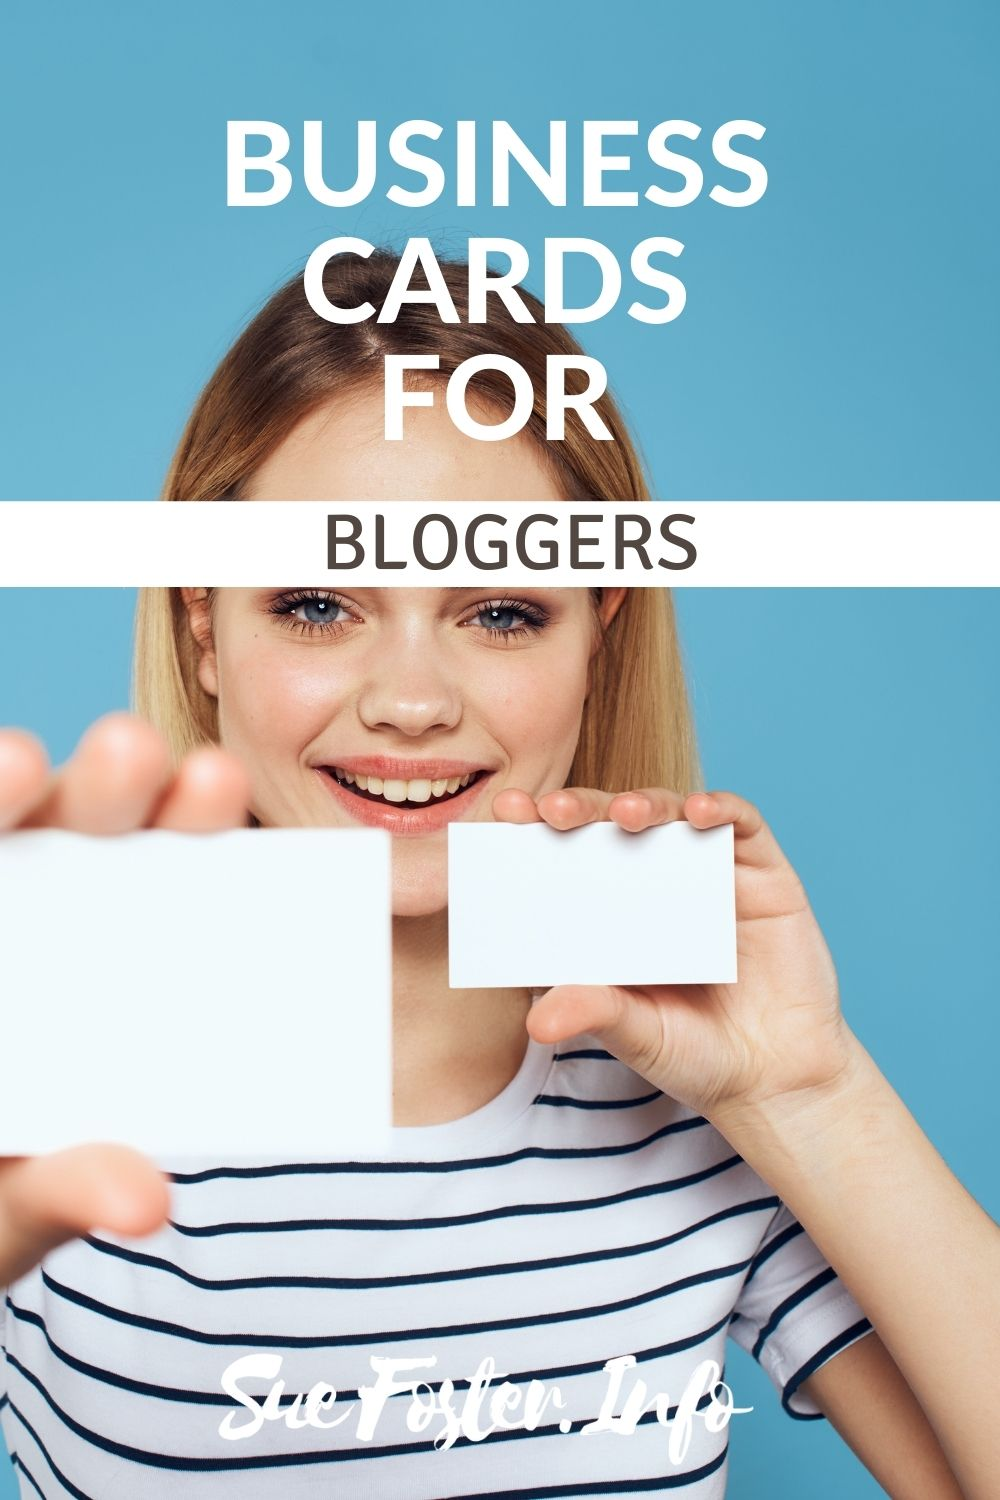 Business card ideas for bloggers.